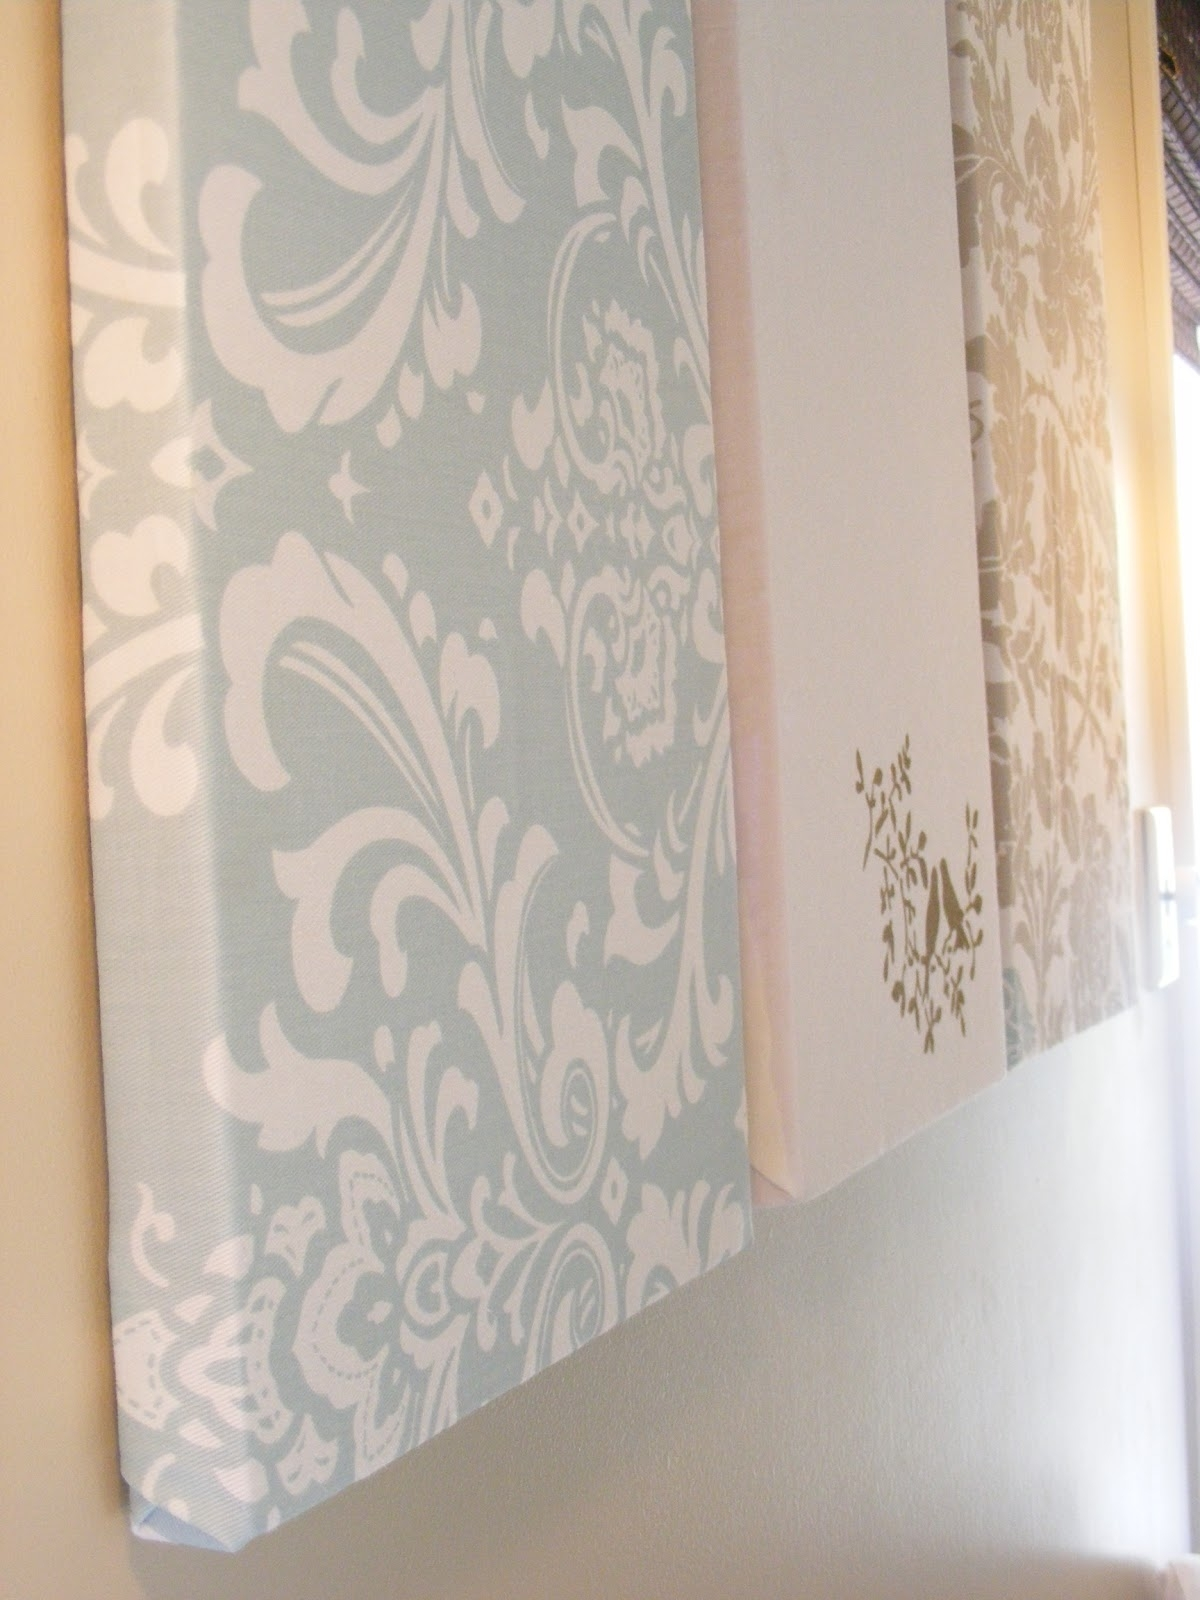 The Complete Guide To Imperfect Homemaking: Simple, Thrifty Diy Art Pertaining To Most Recent Fabric Wall Art Canvas (View 11 of 15)